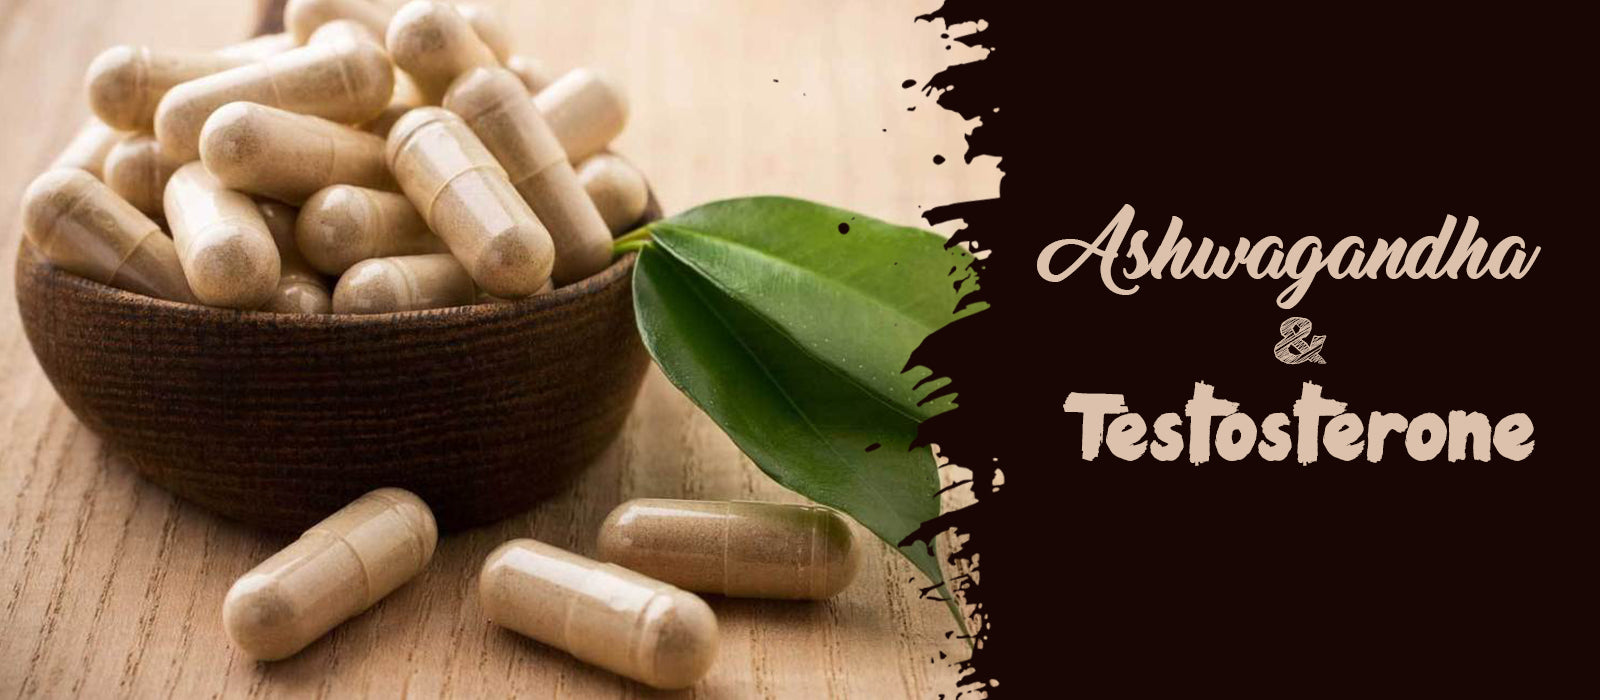 Ashwagandha and Testosterone: Here Is A Scientific Analysis